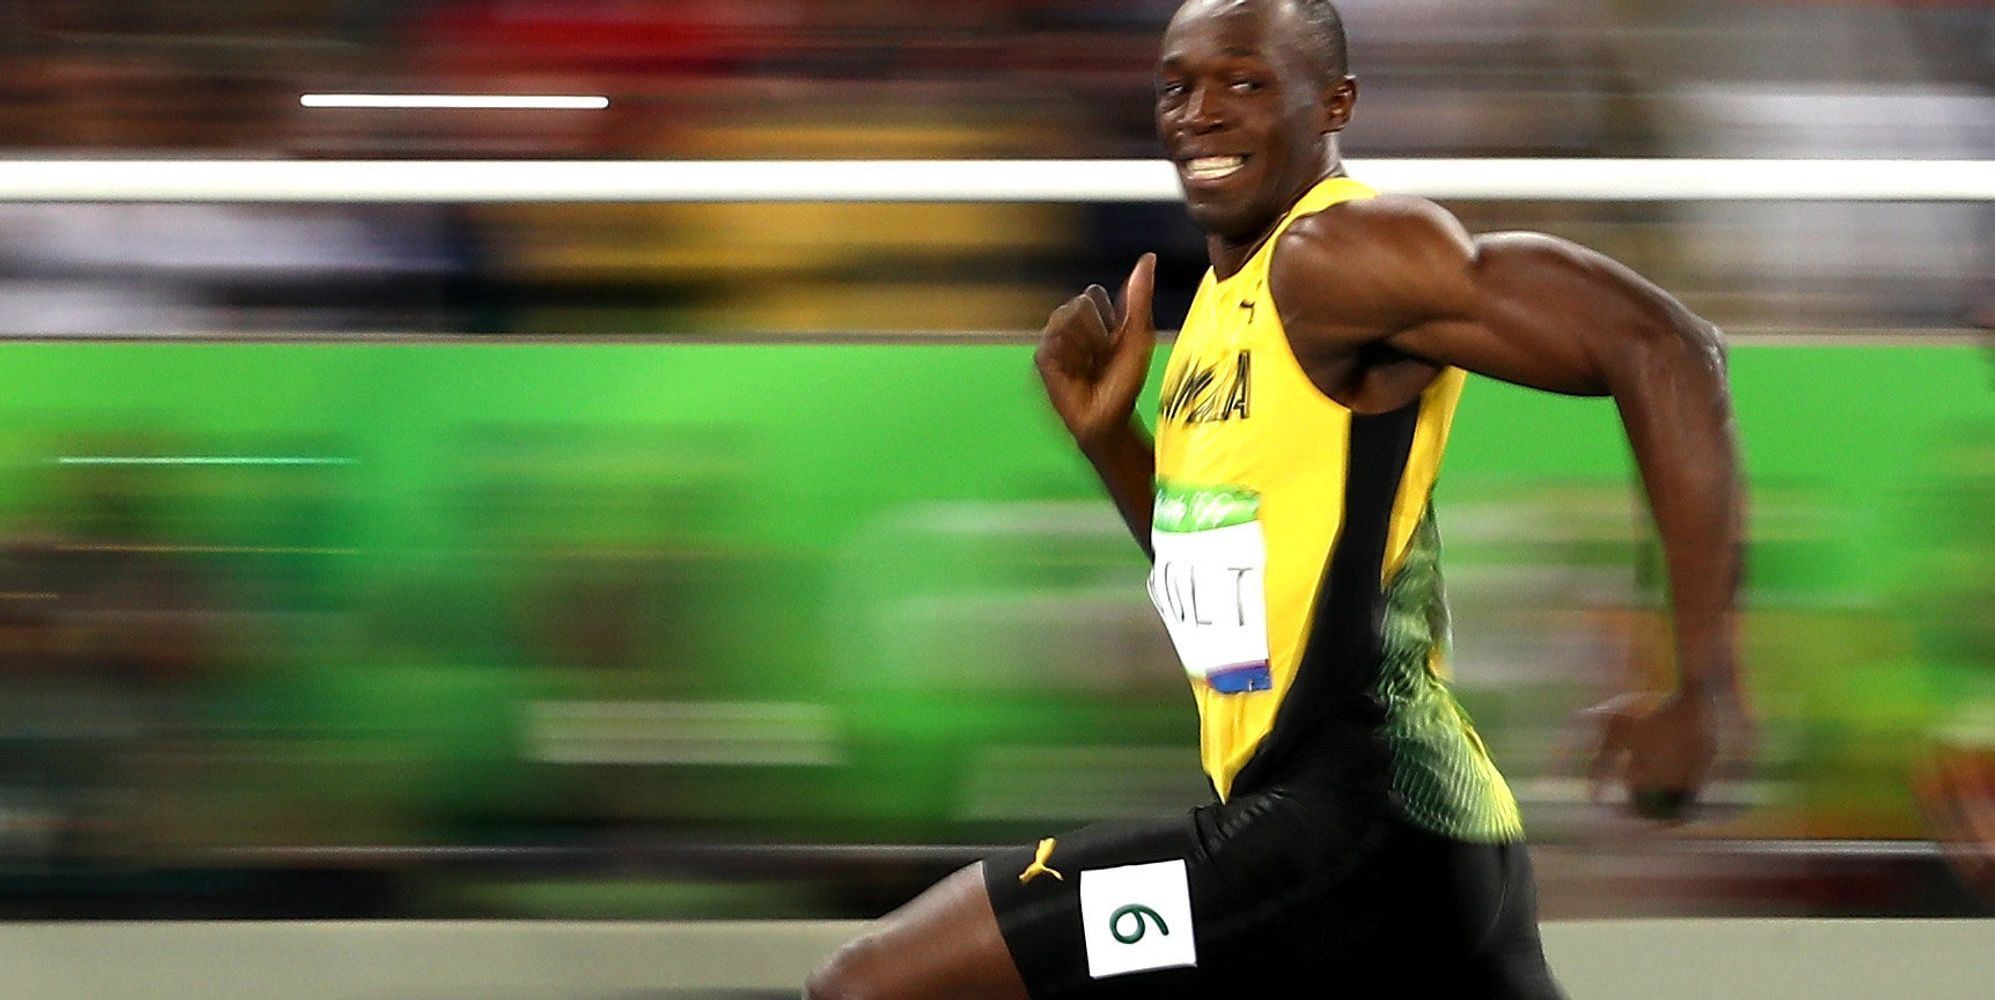 Usain Bolt Smiling Photo Memes Are Taking Over Twitter ...